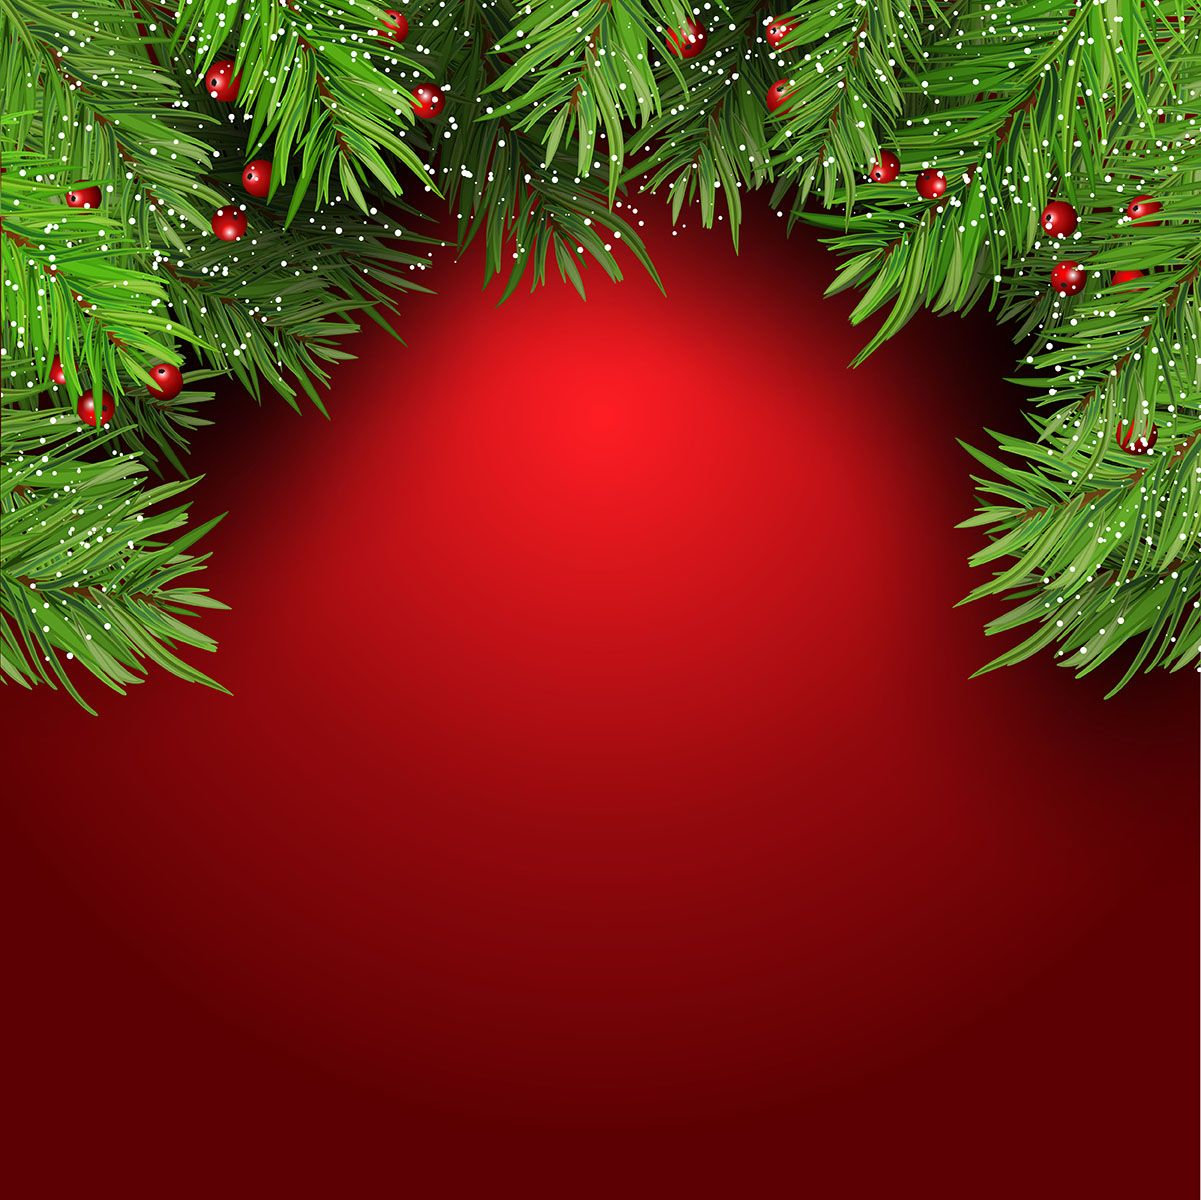 Christmas Background With Fir Tree Branches And Berries 1410 Christmas Wallpaper Backgrounds Christmas Background Christmas Background Images